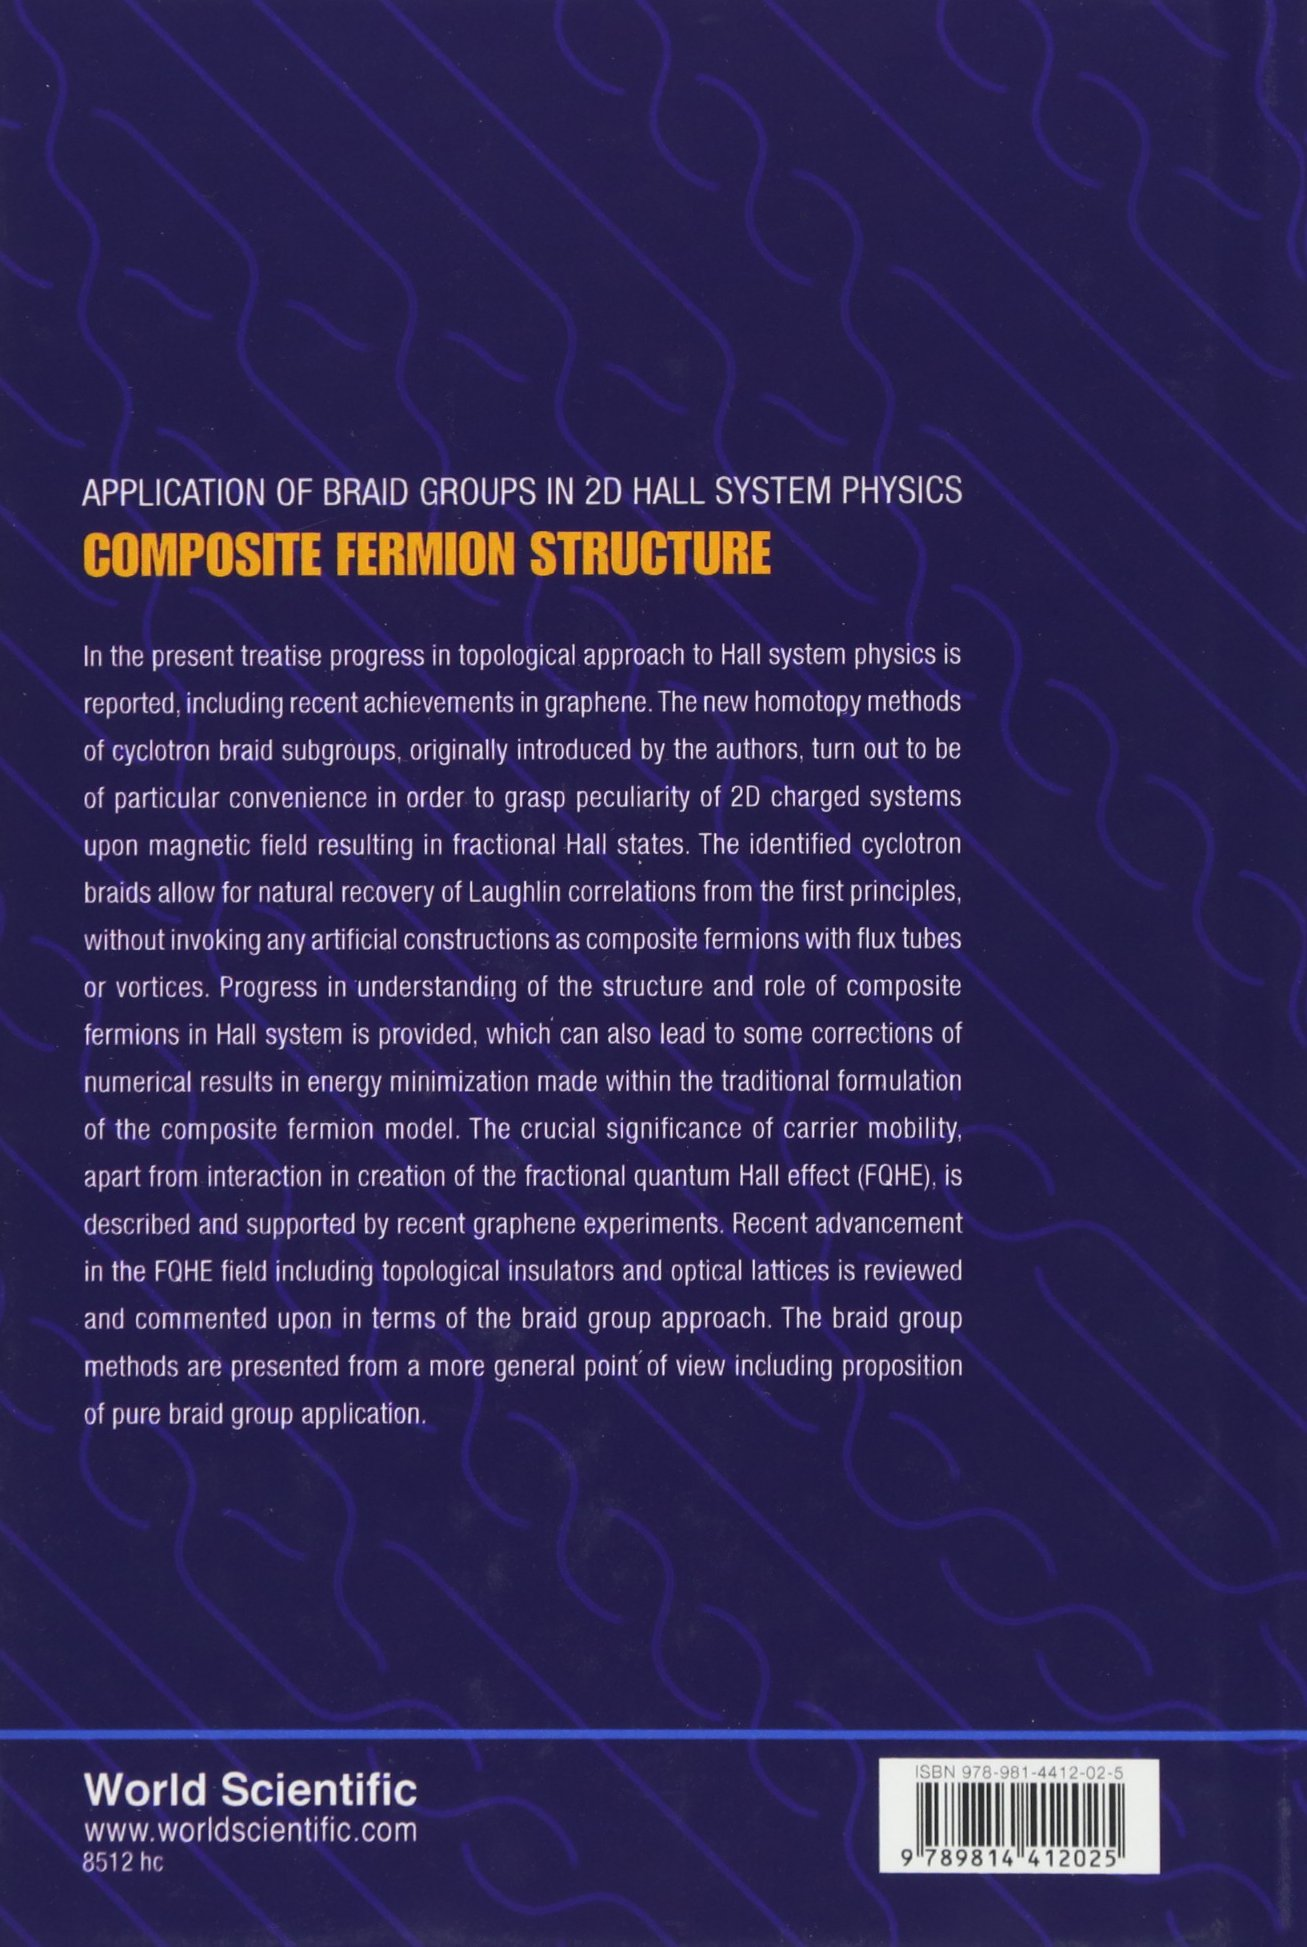 Application of Braid Groups in 2D Hall System Physics:Composite Fermion Structure